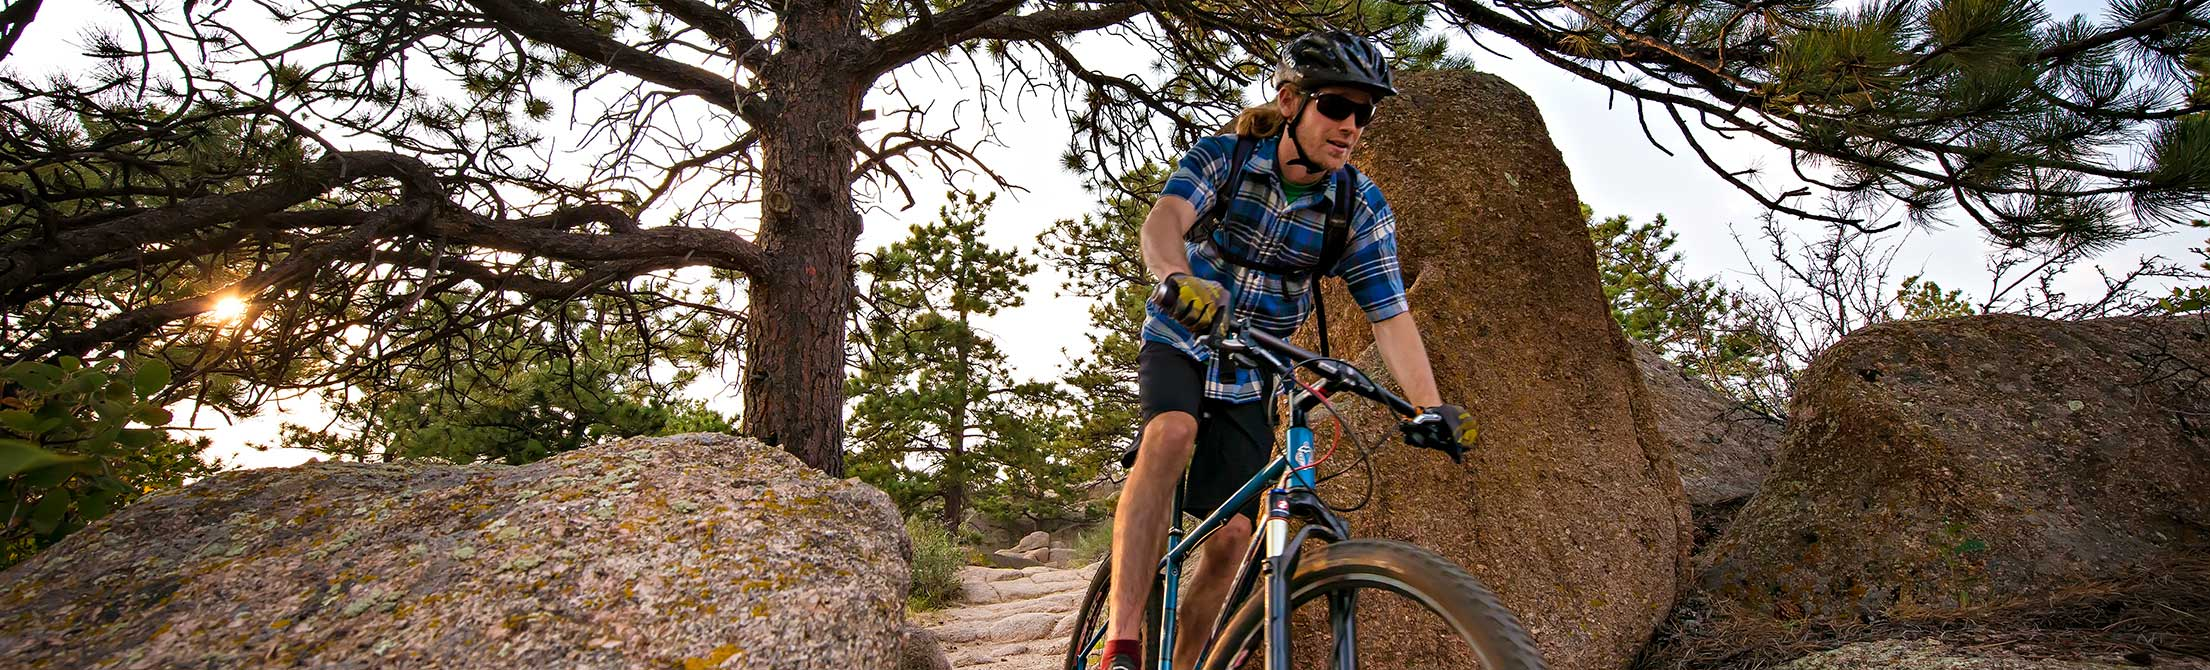 Mountain biker at Curt Gowdy